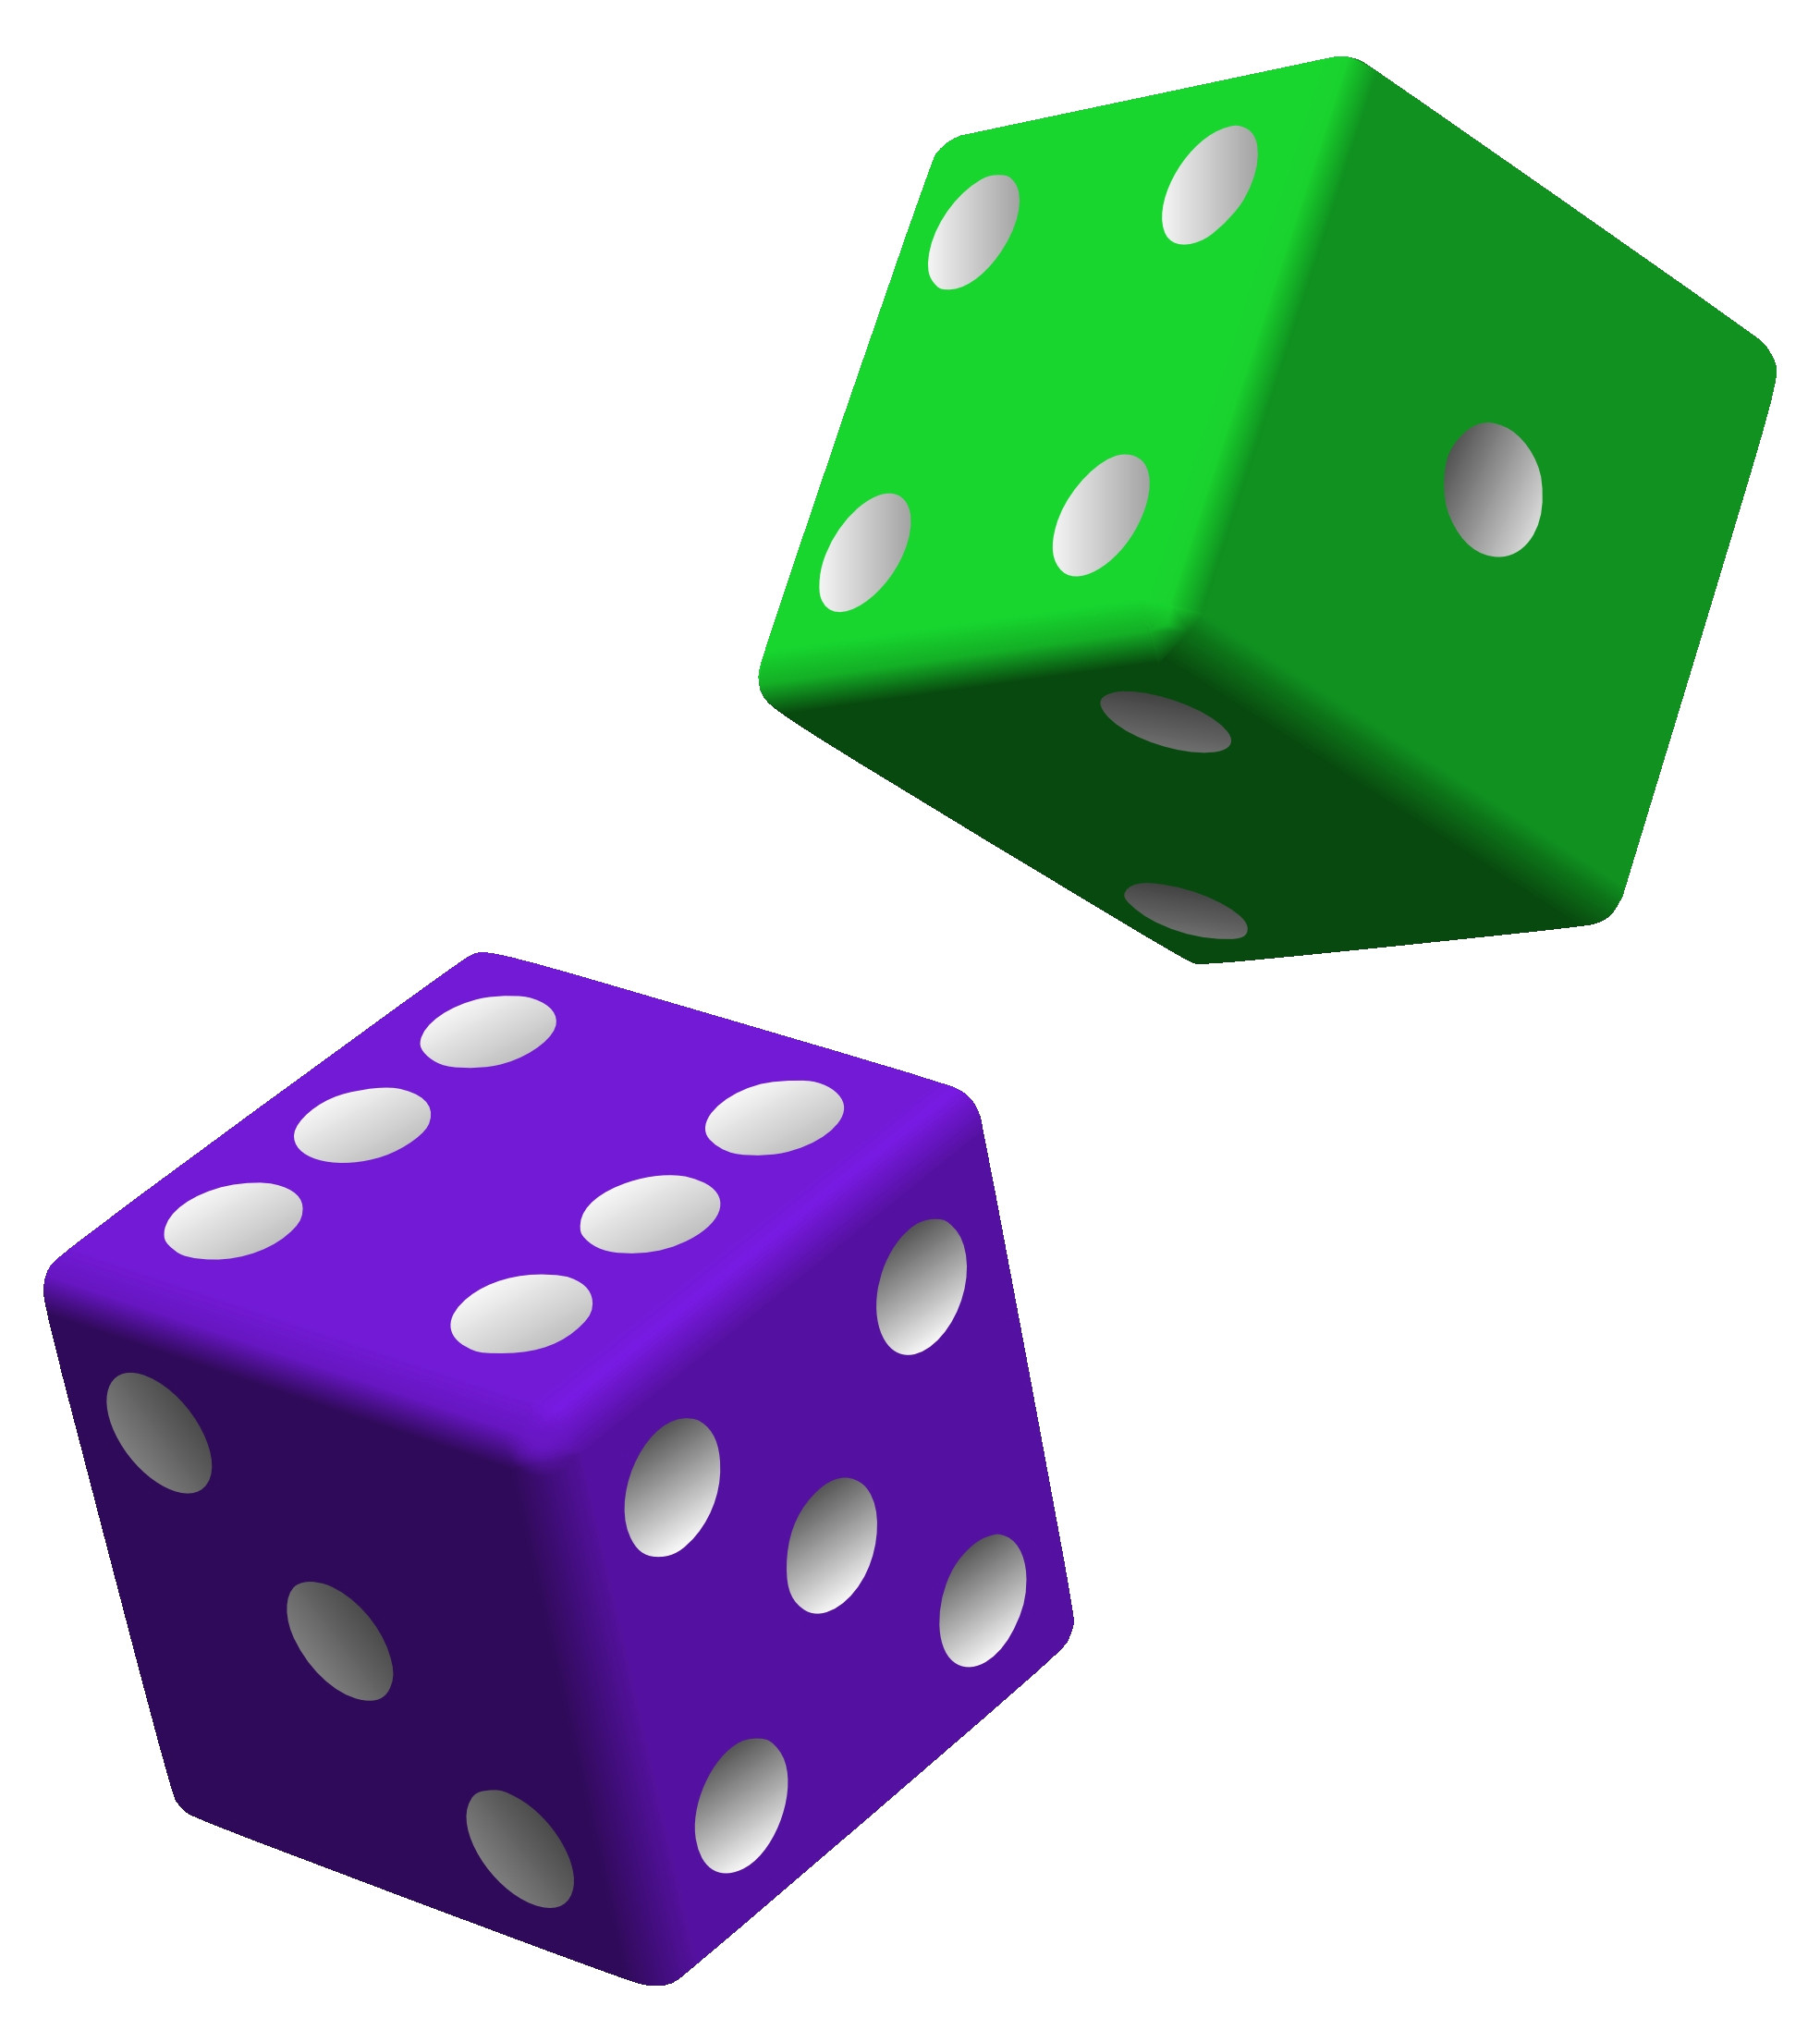 hight resolution of 1969x2183 1 dice clipart